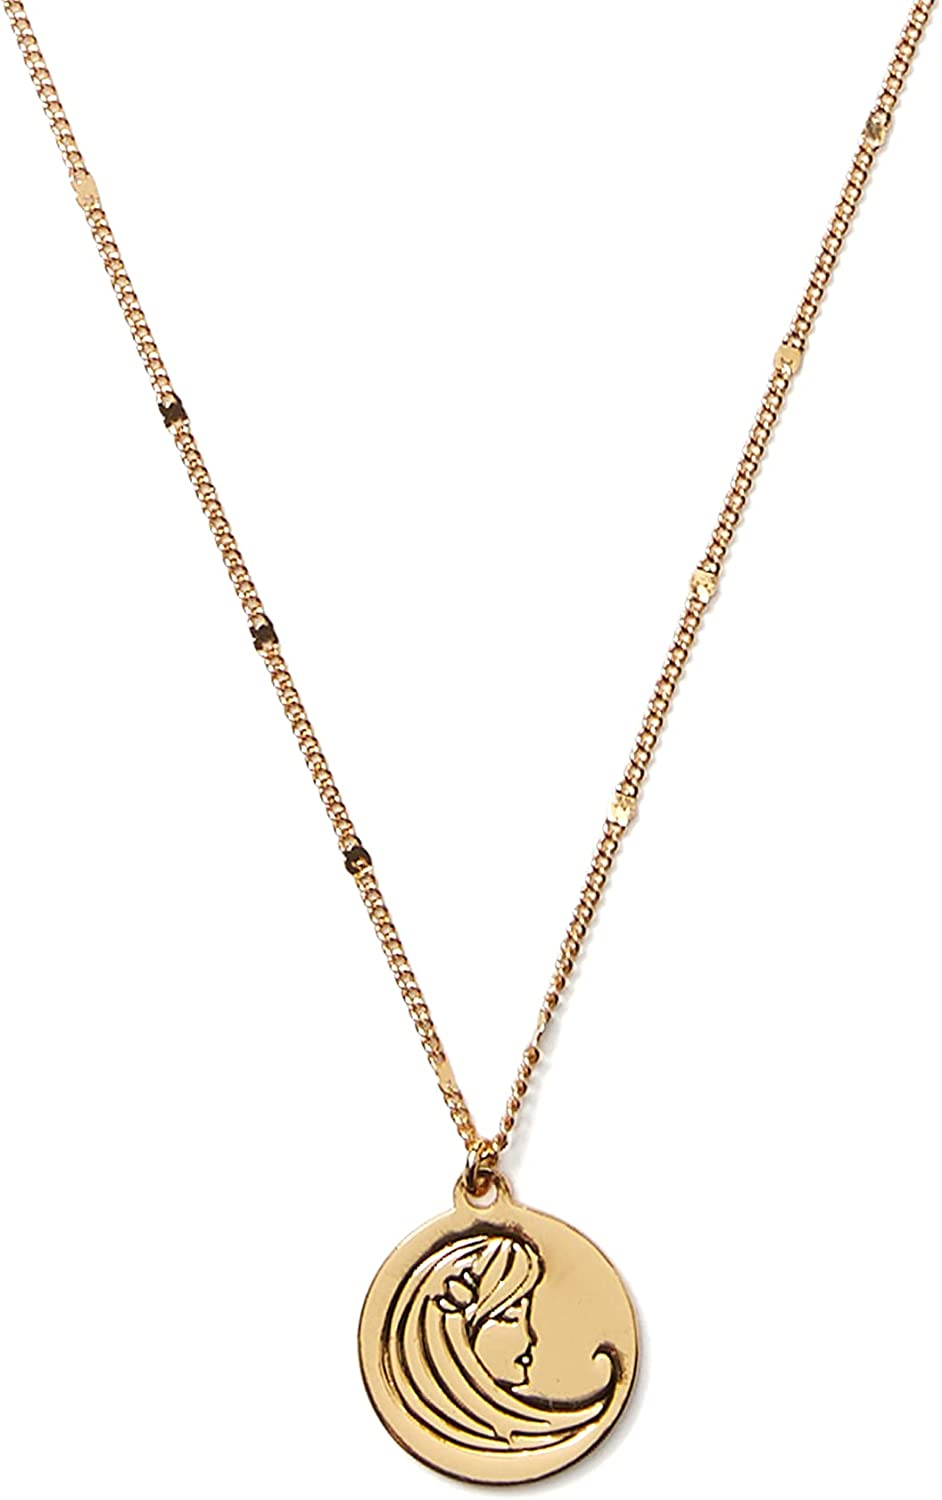 Kate Spade New York in Pendant Necklace 限定タイムセール 限定モデル The Virgo Stars